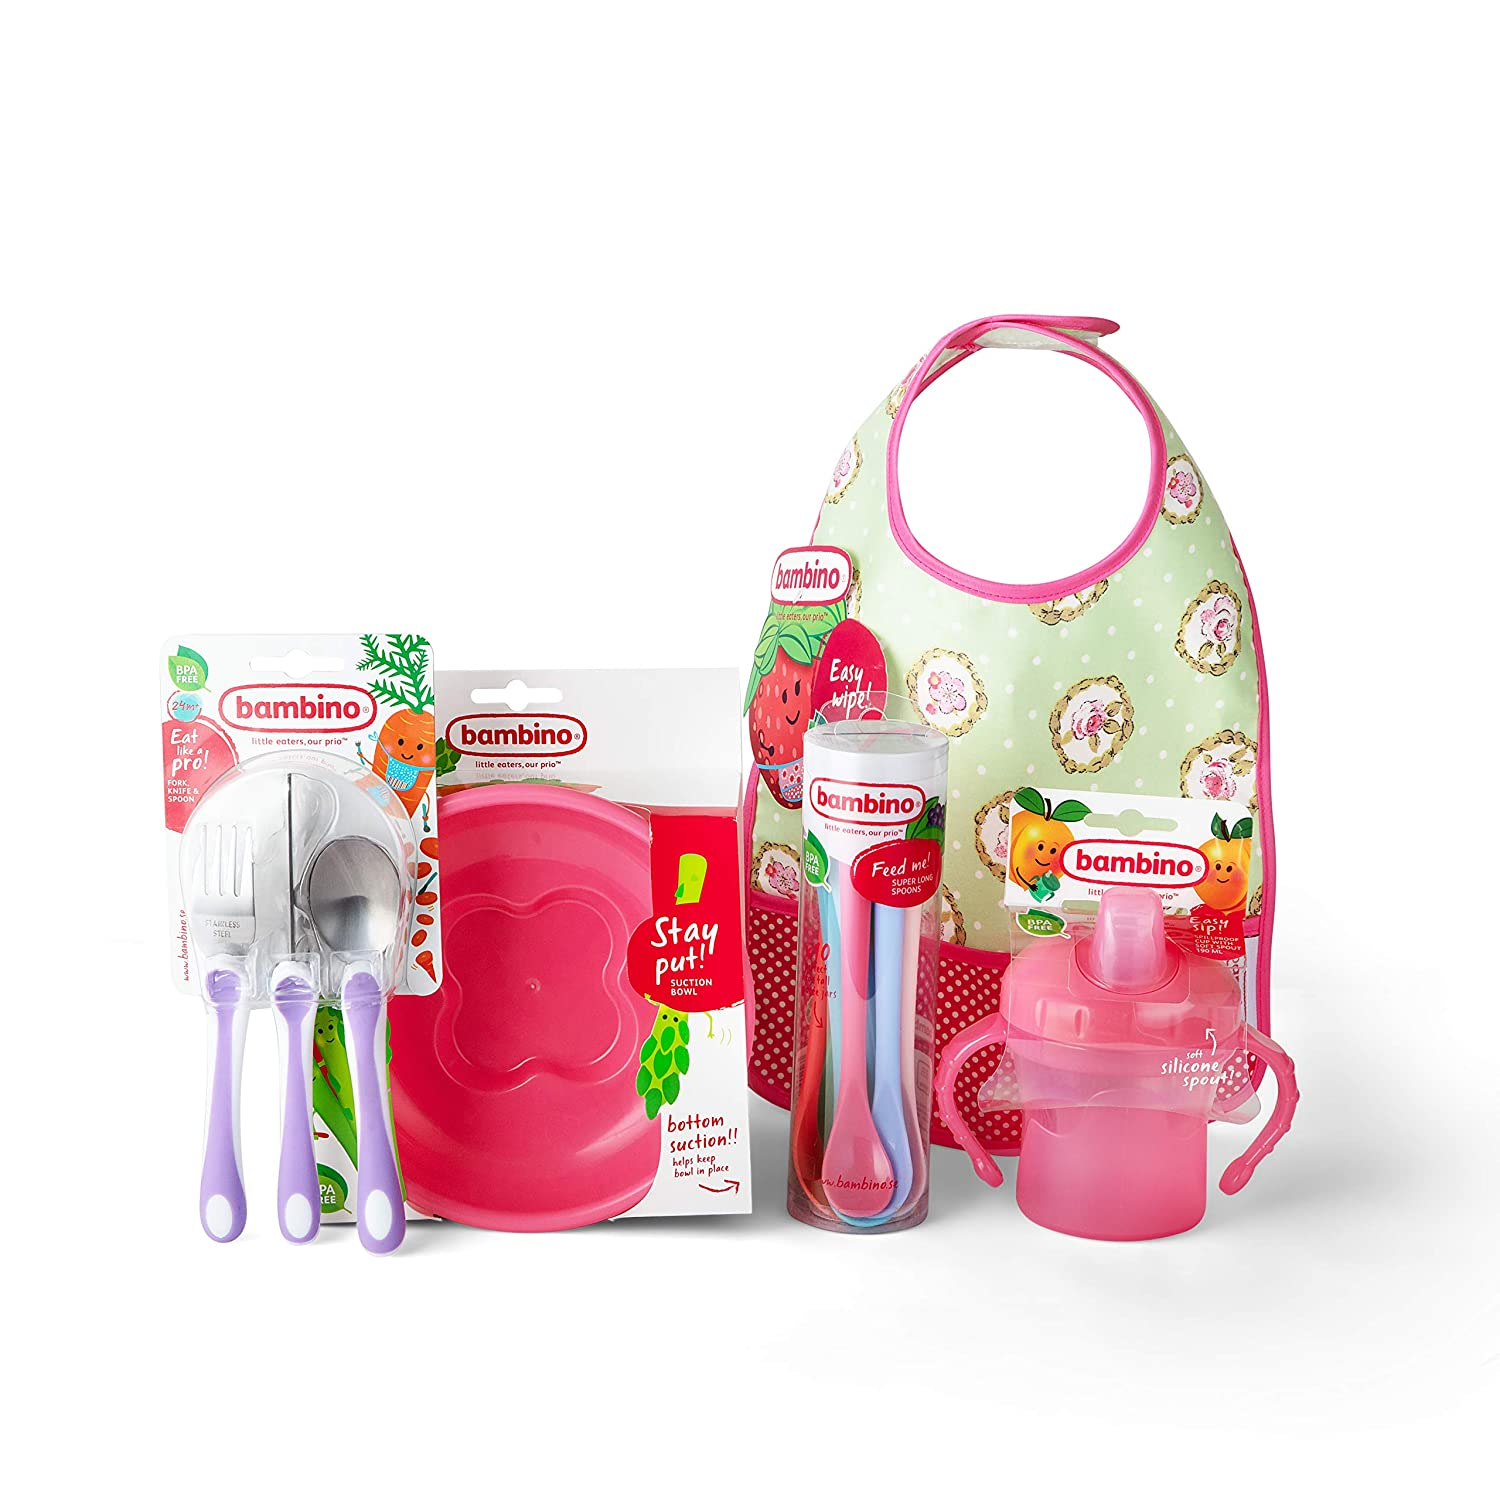 Bambino Set of 5 Feeding Accessories, Pack of Baby Eating Utensils and Bib,  Toddler Meal Set Made from Safe Materials, Contains Baby Spoons and More